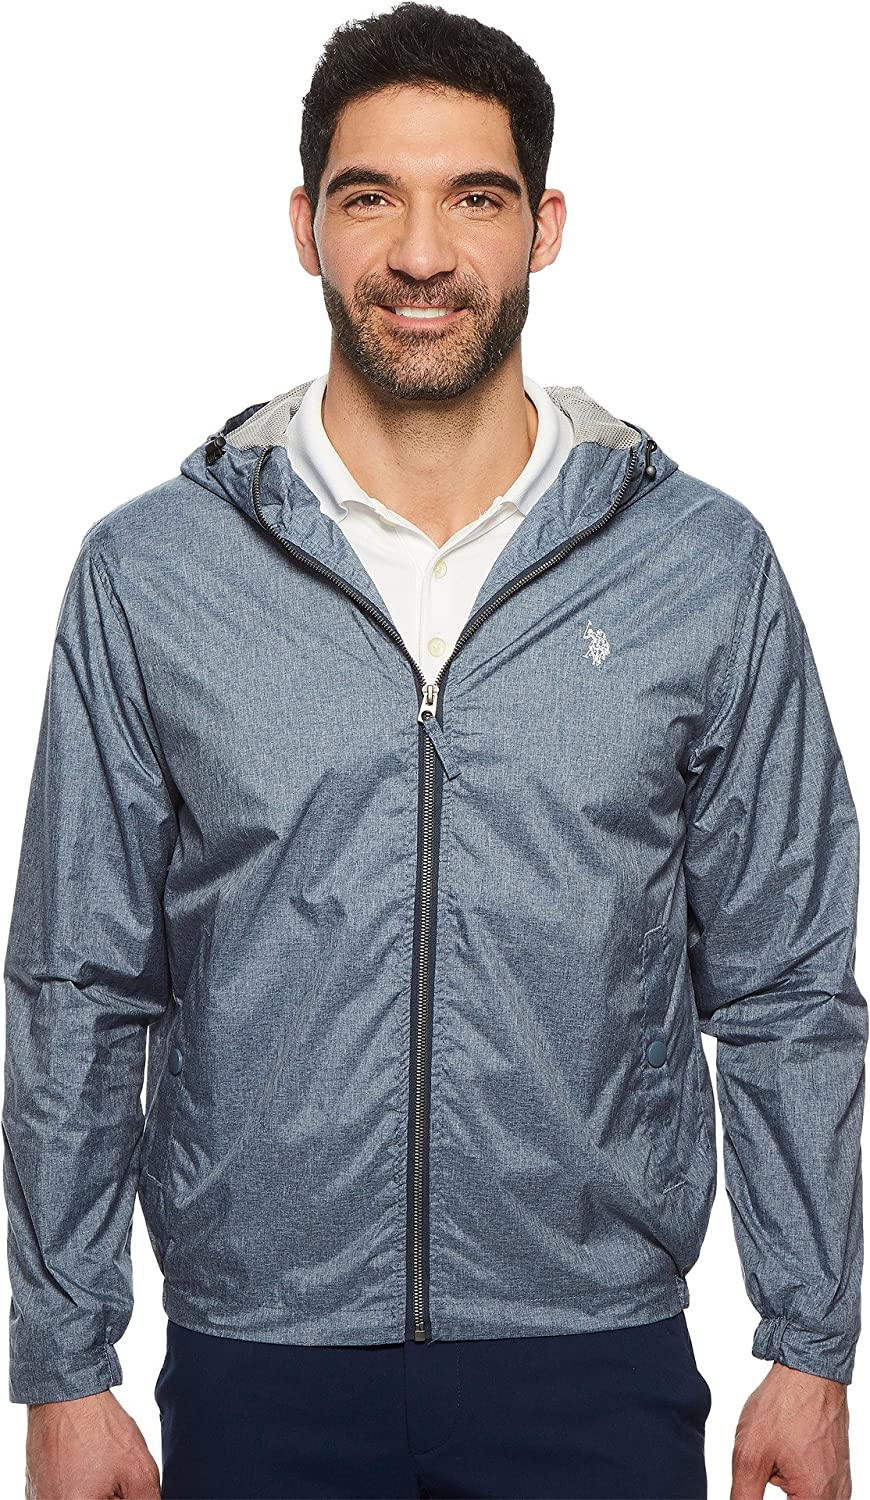 U.S. Polo Assn. OUTERWEAR メンズ B07795Y7CP X-Large|Classic Navy Heather-lmhh Classic Navy Heather-lmhh X-Large